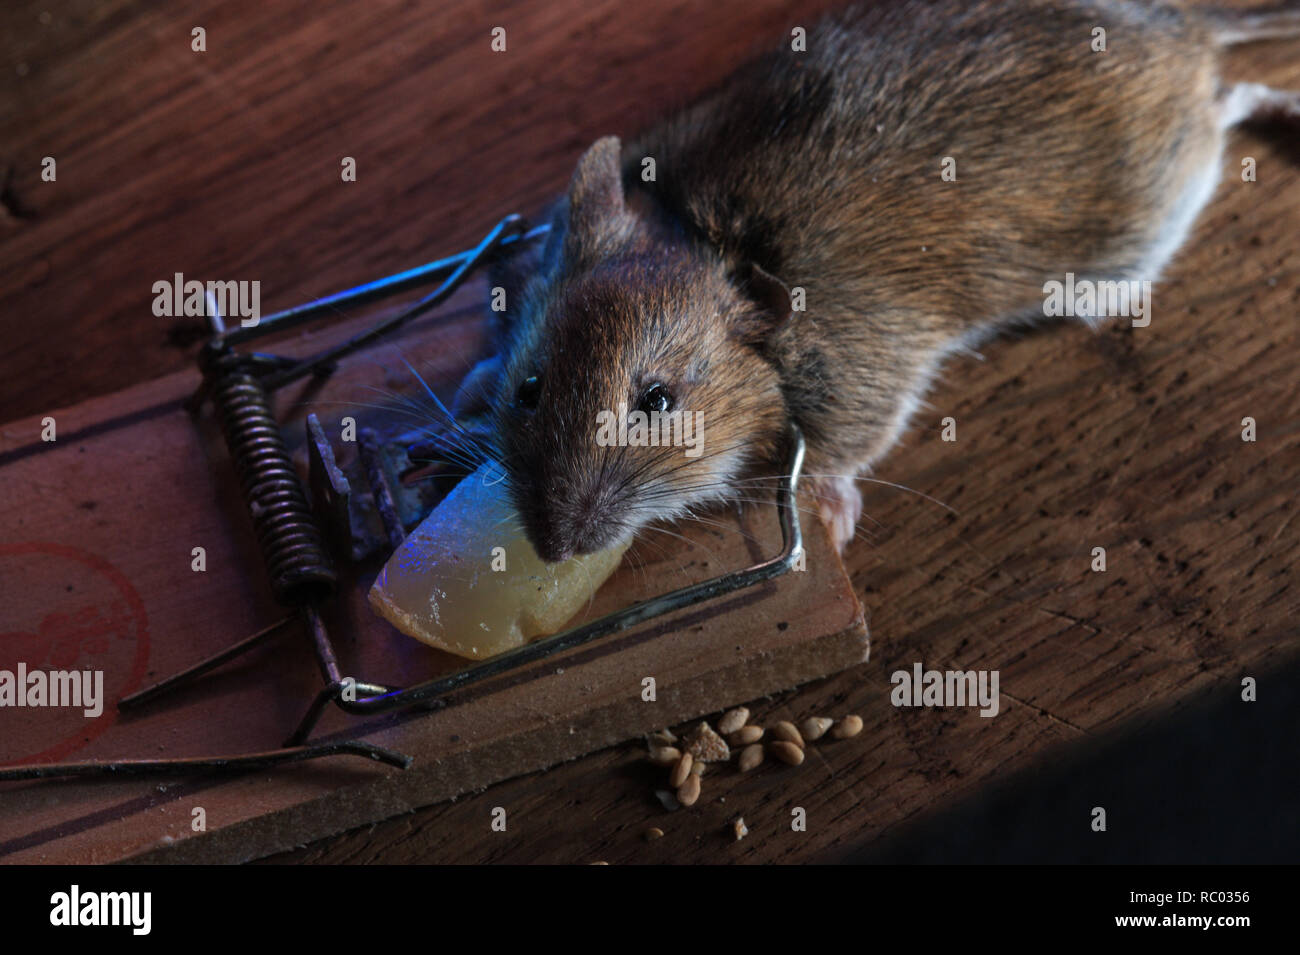 Maus in der Mausefalle gefangen | mouse caught in a mouse trap Stock Photo